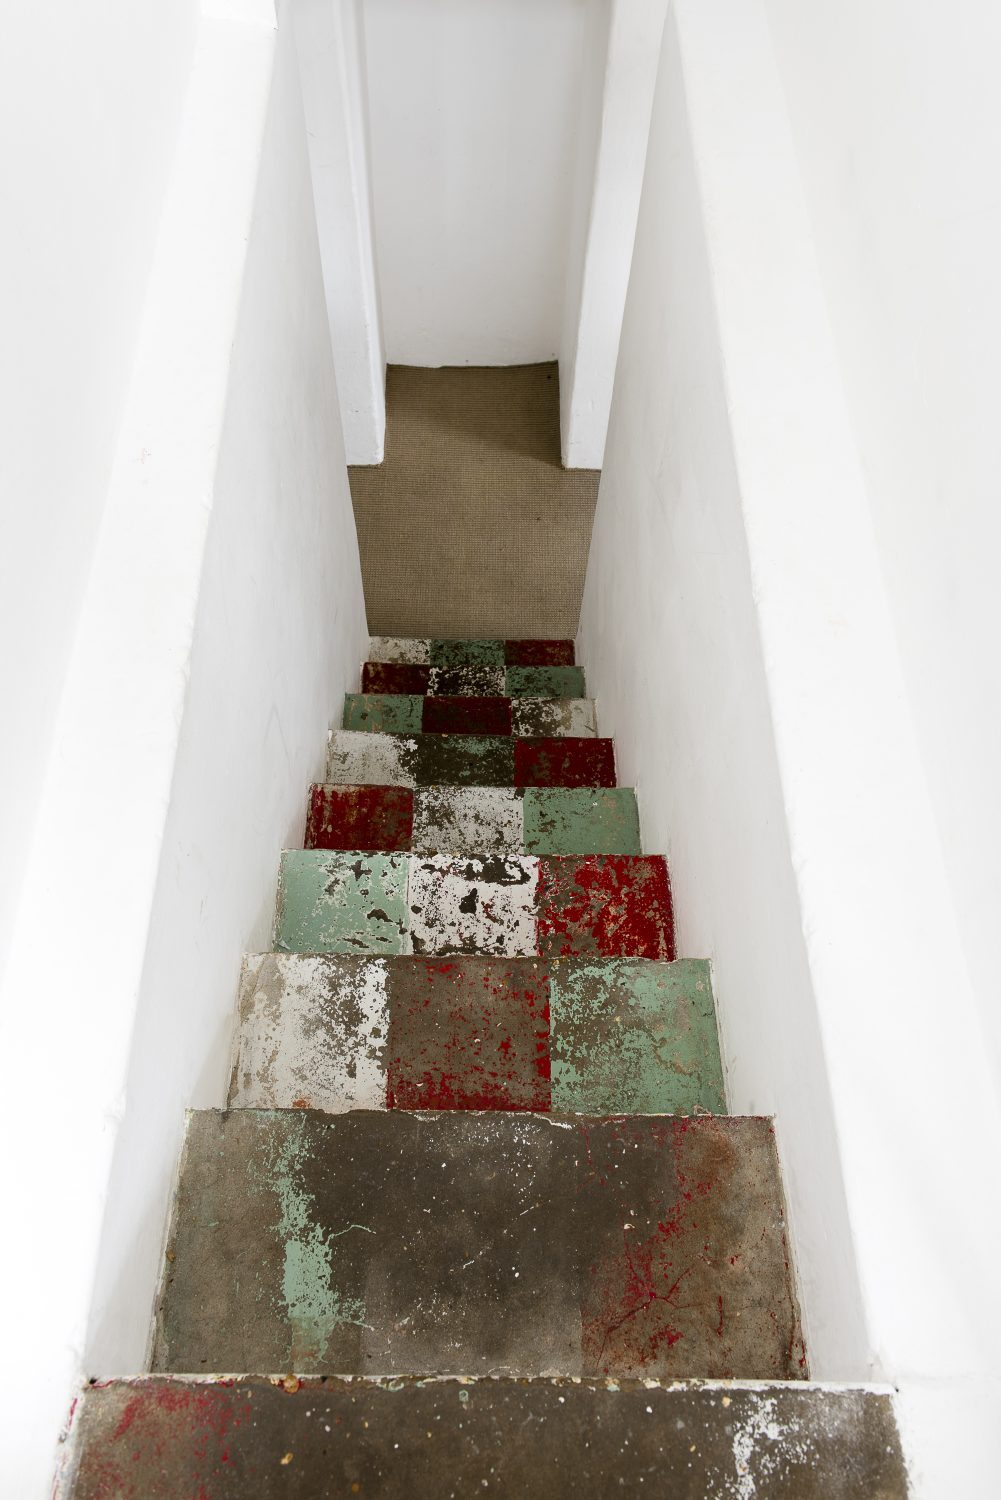 Marta left the patina of old paint on the main staircase, as part of the story of the house